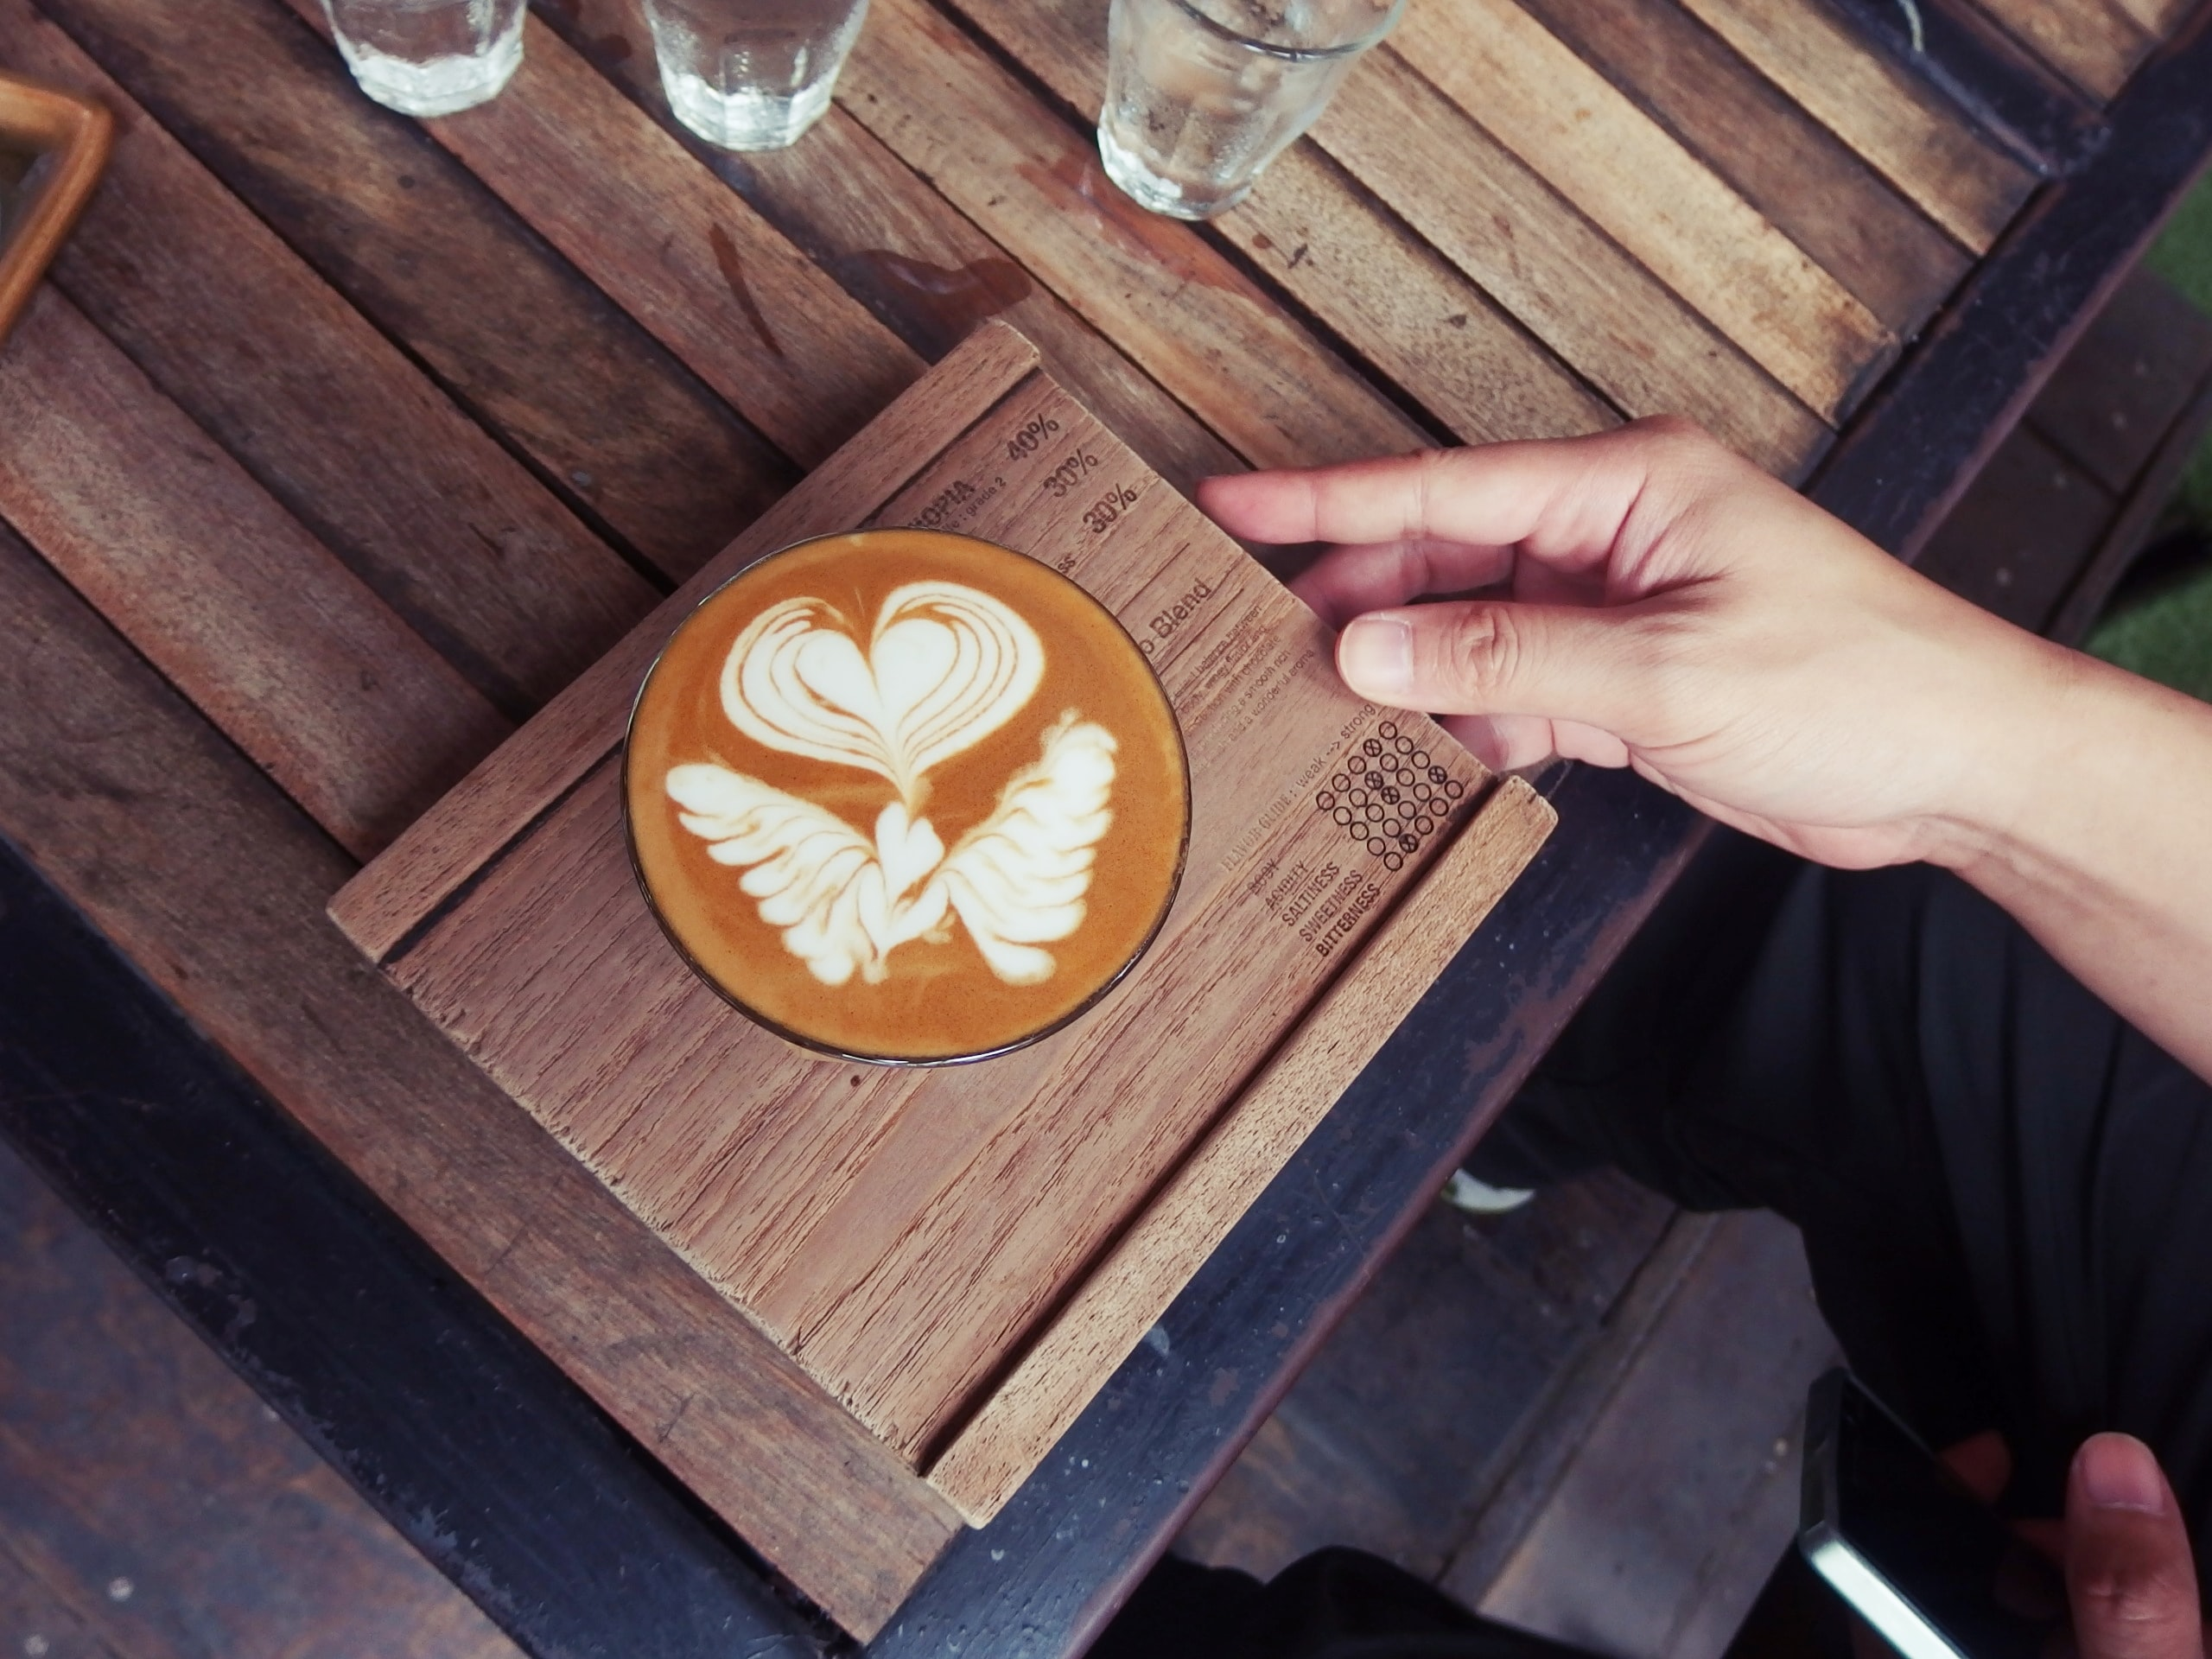 Angel wings and a heart formed the art of a cup of latte served on wood.